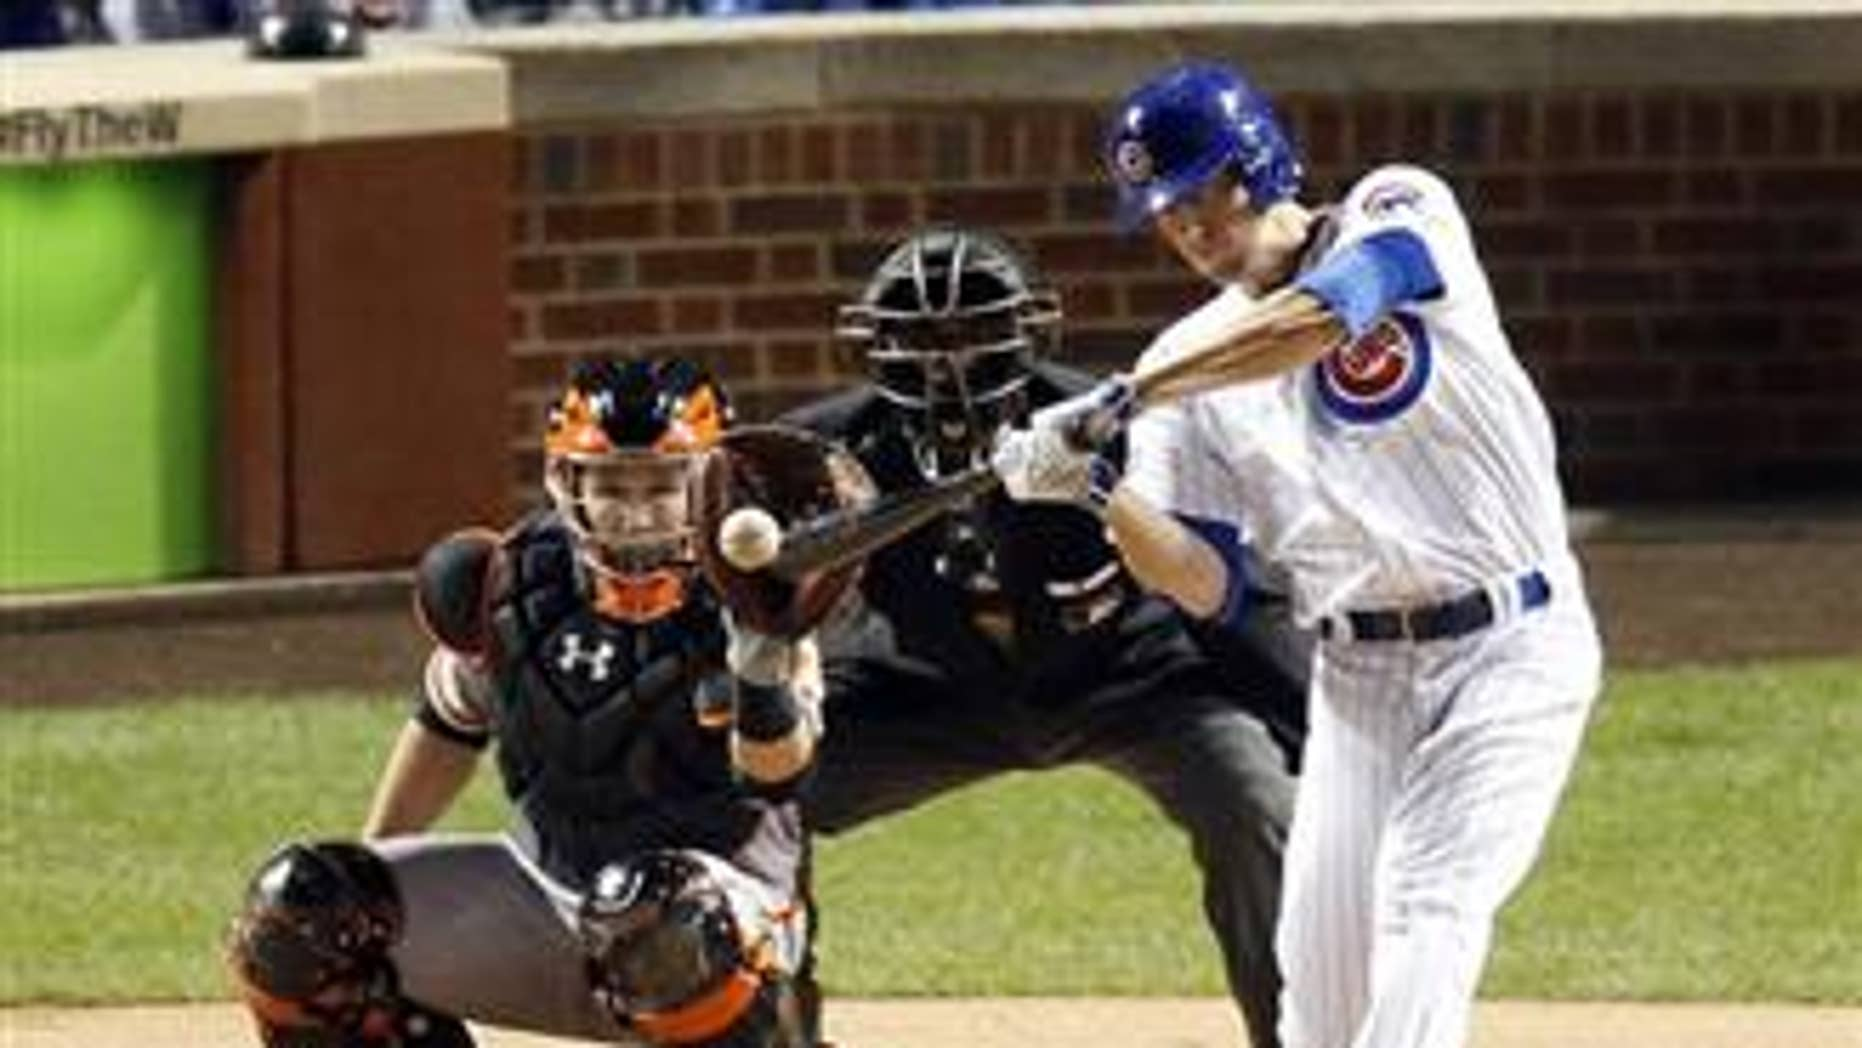 Chicago Cubs' Kris Bryant hits a double in the fourth inning of Game 1 of baseball's National League Division Series against the San Francisco Giants, on Oct. 7, 2016, in Chicago.